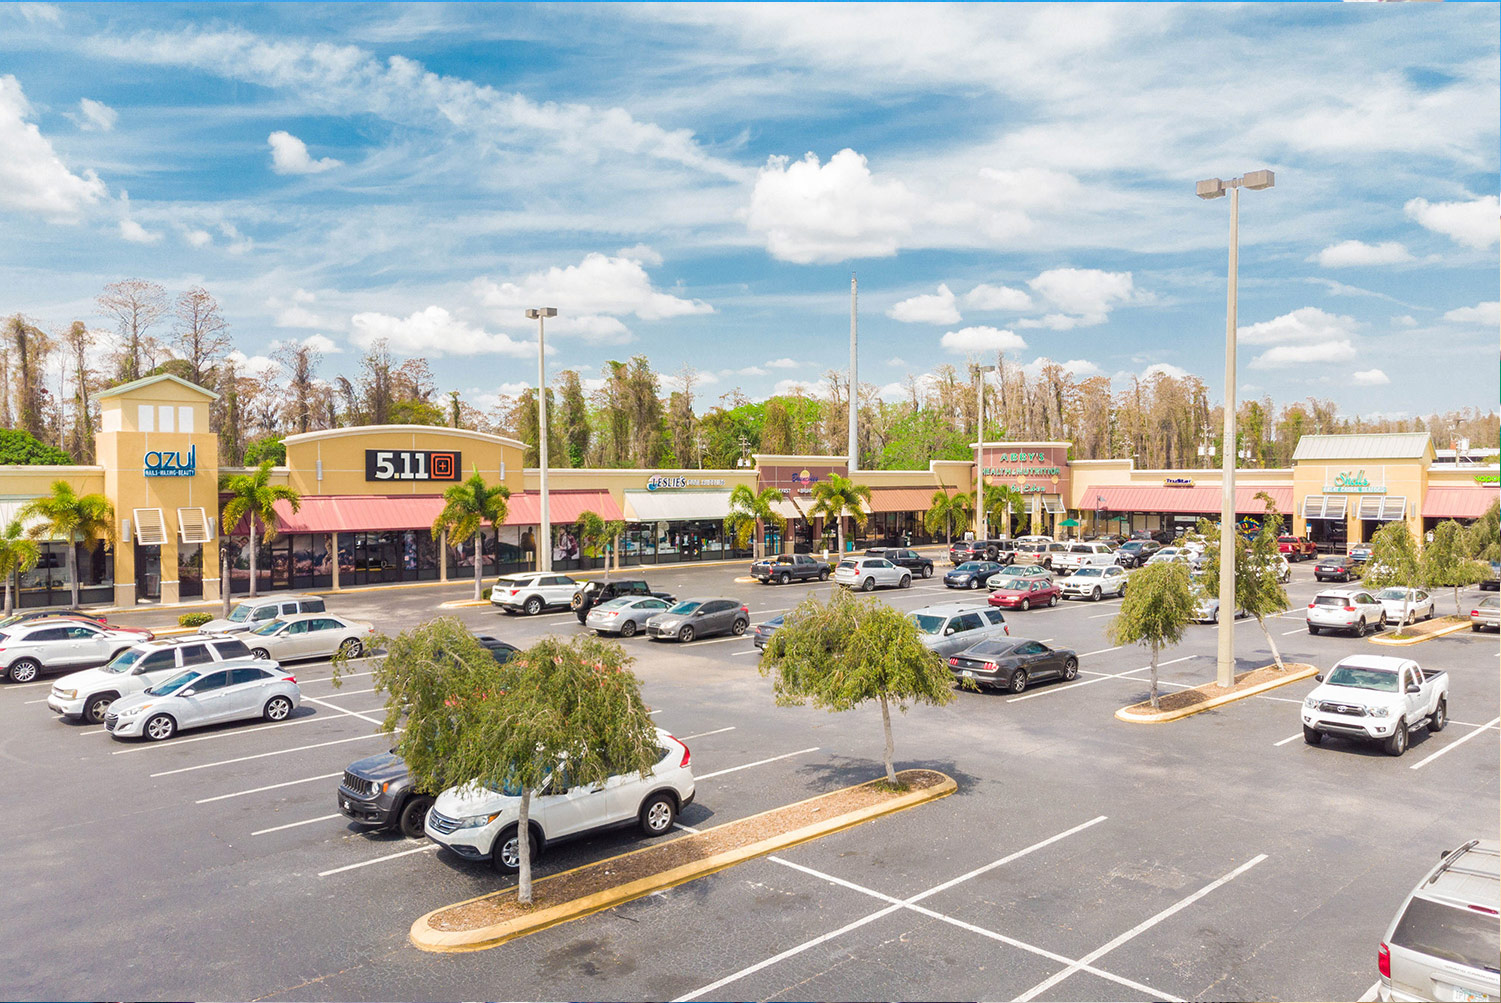 The Shoppes of Carrollwood